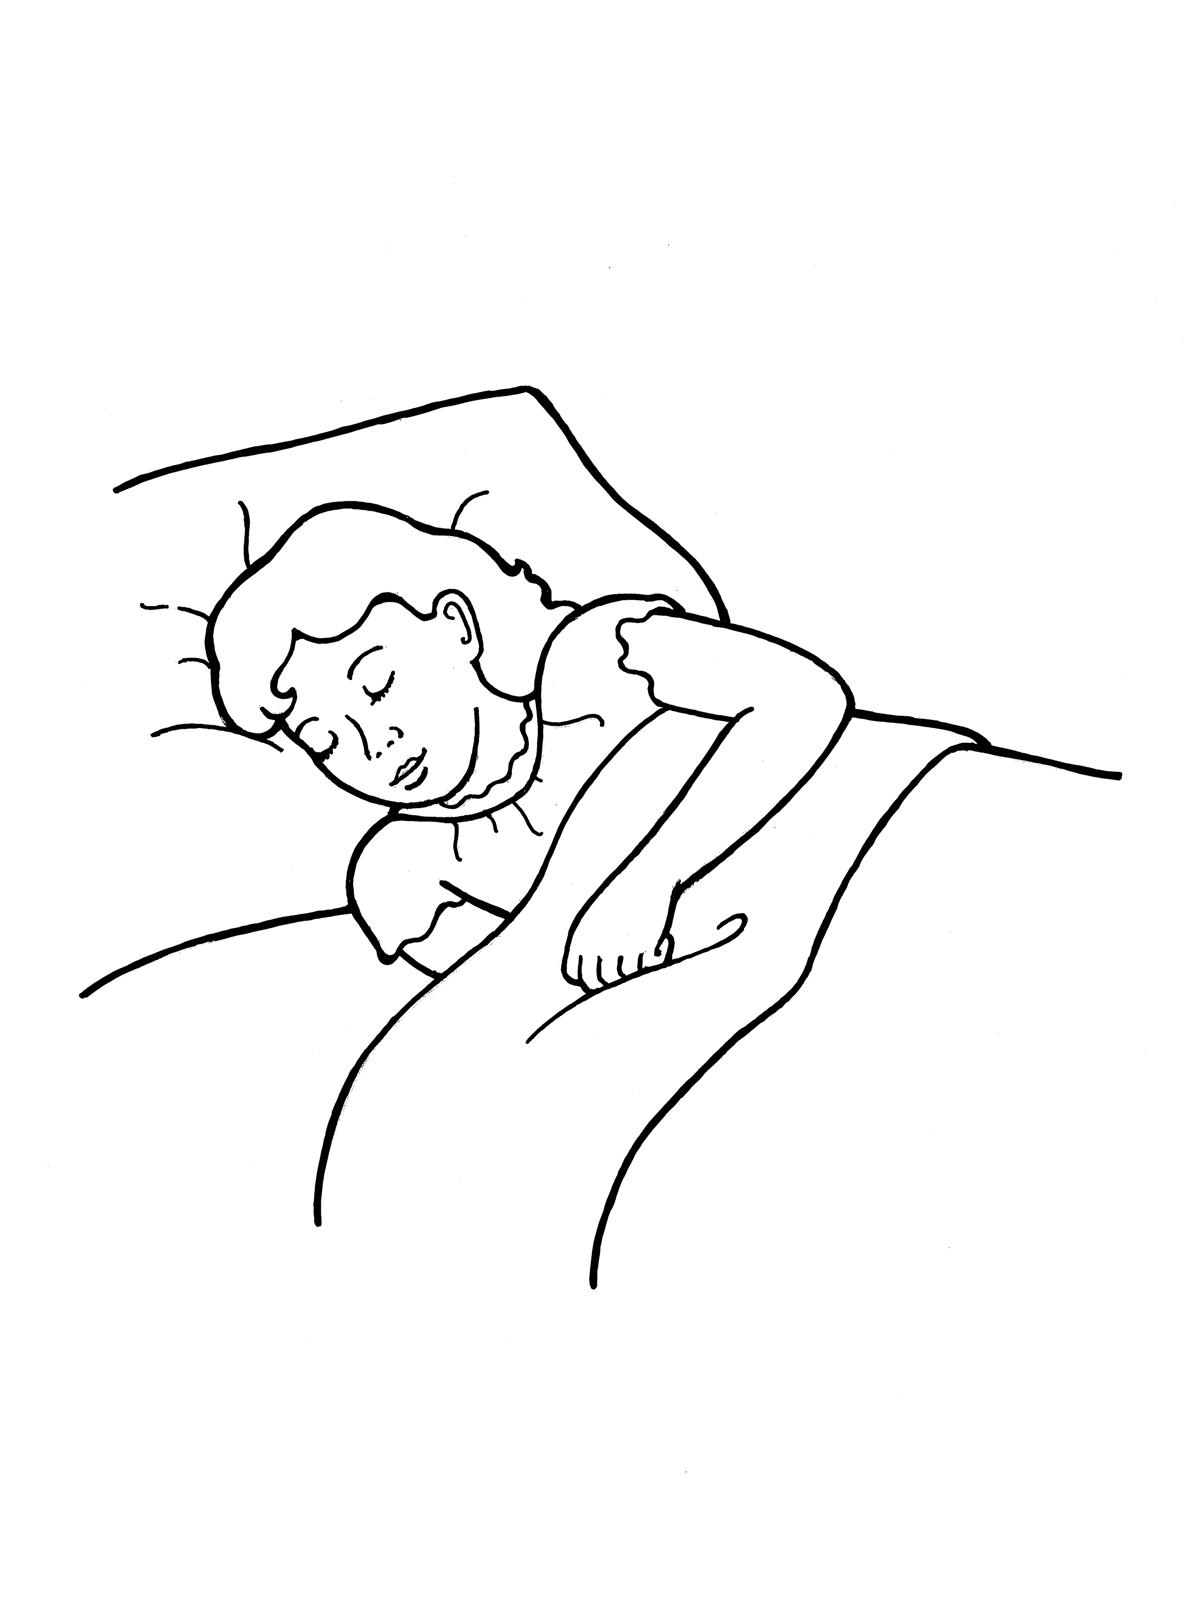 Sleeping Clipart Black And White 3 Clipart Station